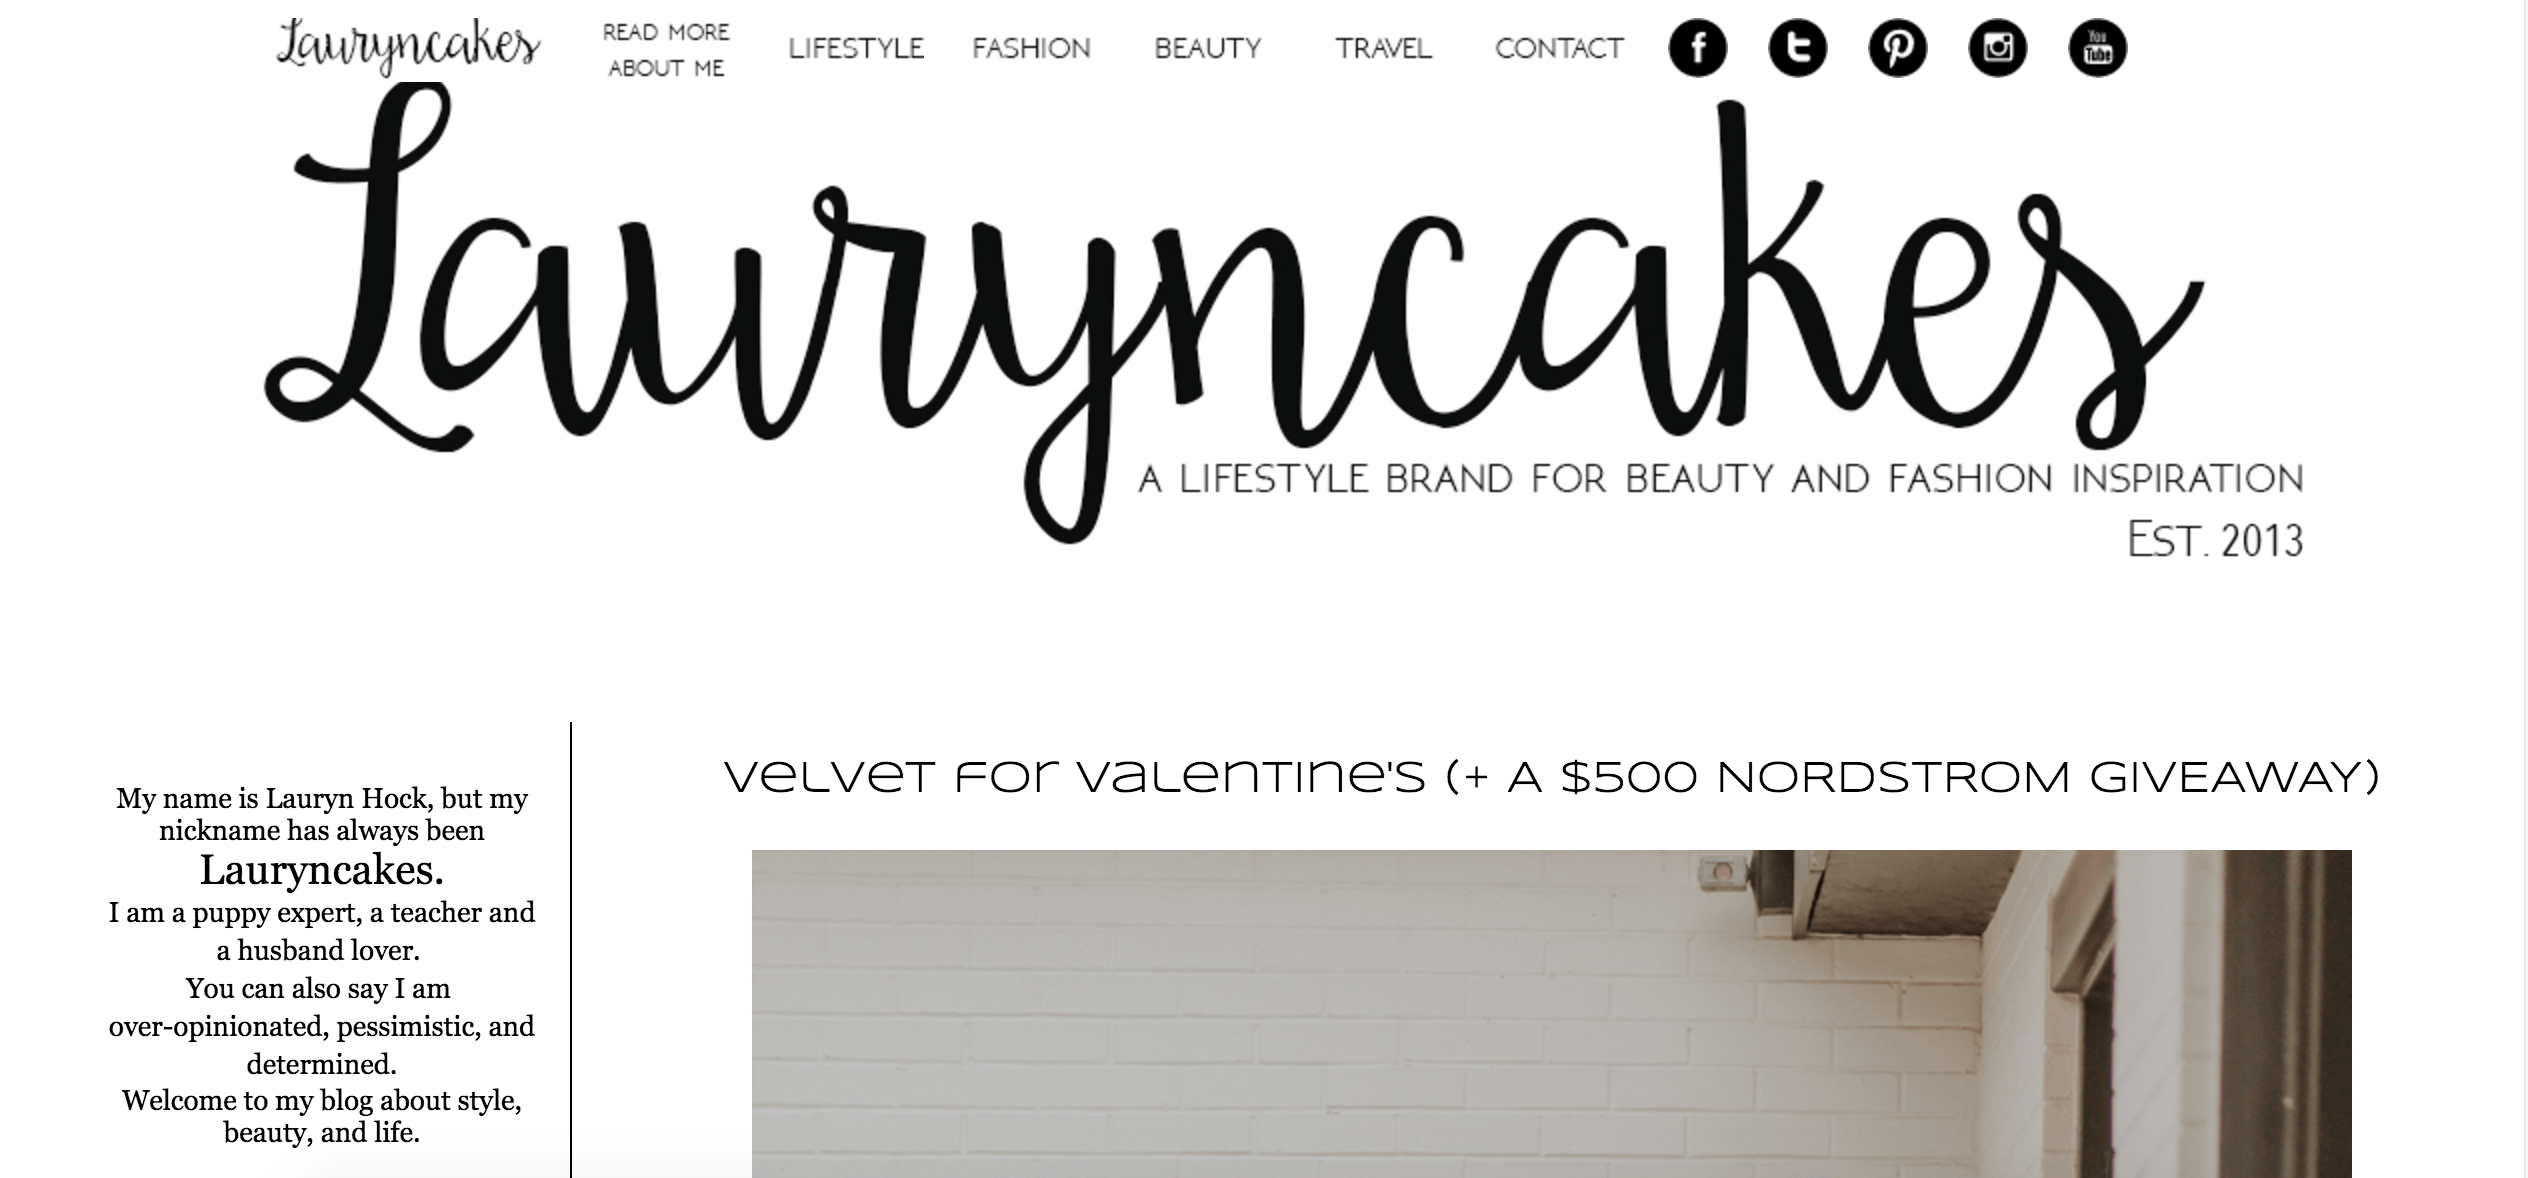 Free Download List Of Valentines Day Influencers